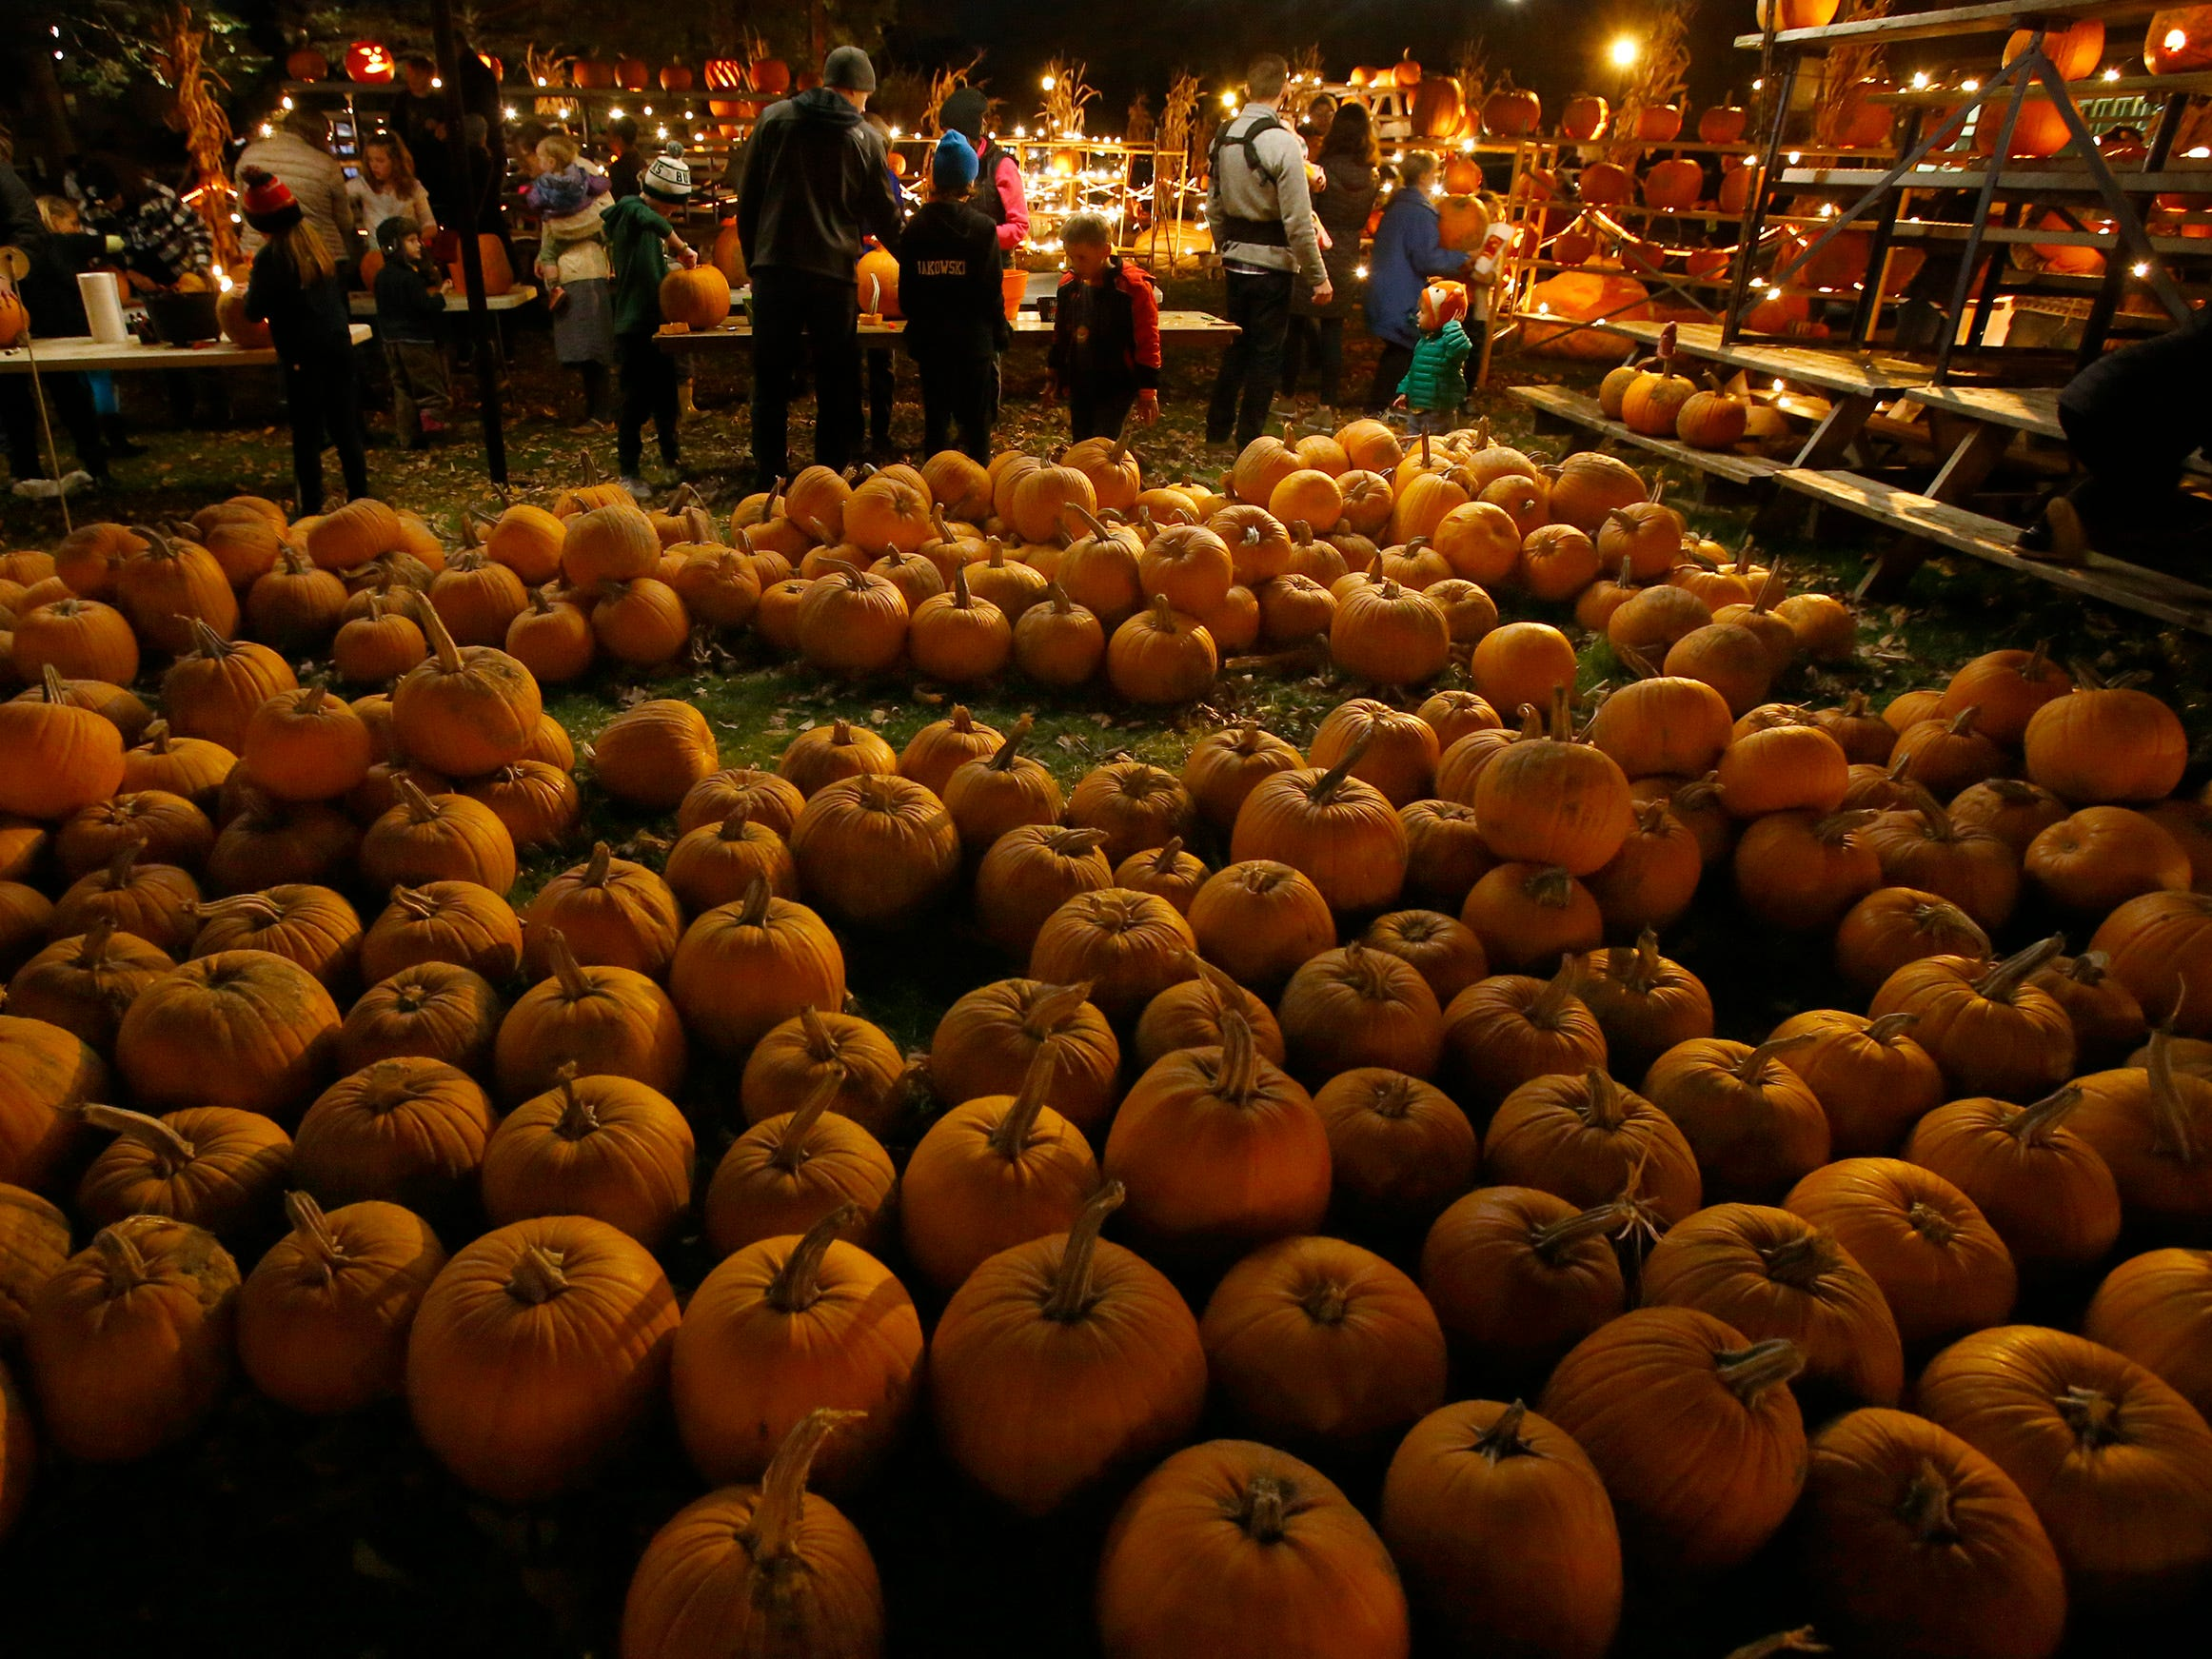 Visitors can select a gourd from the pumpkin patch to carve at the 32nd annual Whitefish Bay Great Pumpkin Festival at Old Schoolhouse Park, hosted by the Whitefish Bay Civic Foundation, on Oct. 25. The festival runs from 6 to 9 p.m. Wednesday, Oct. 24, through Sunday, Oct. 28.